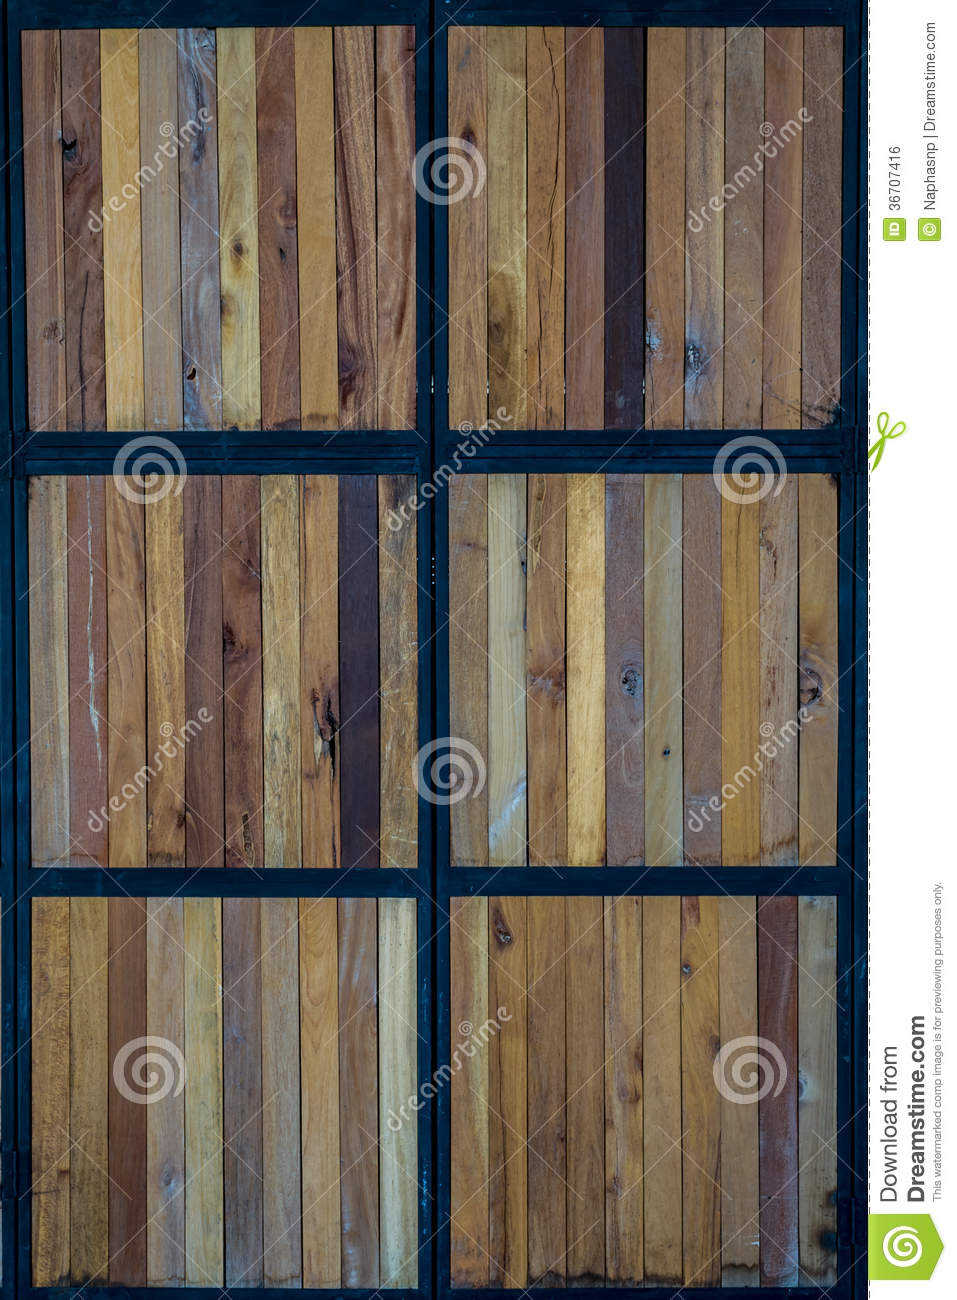 Wooden Door Royalty Free Stock Image - Image: 36707416